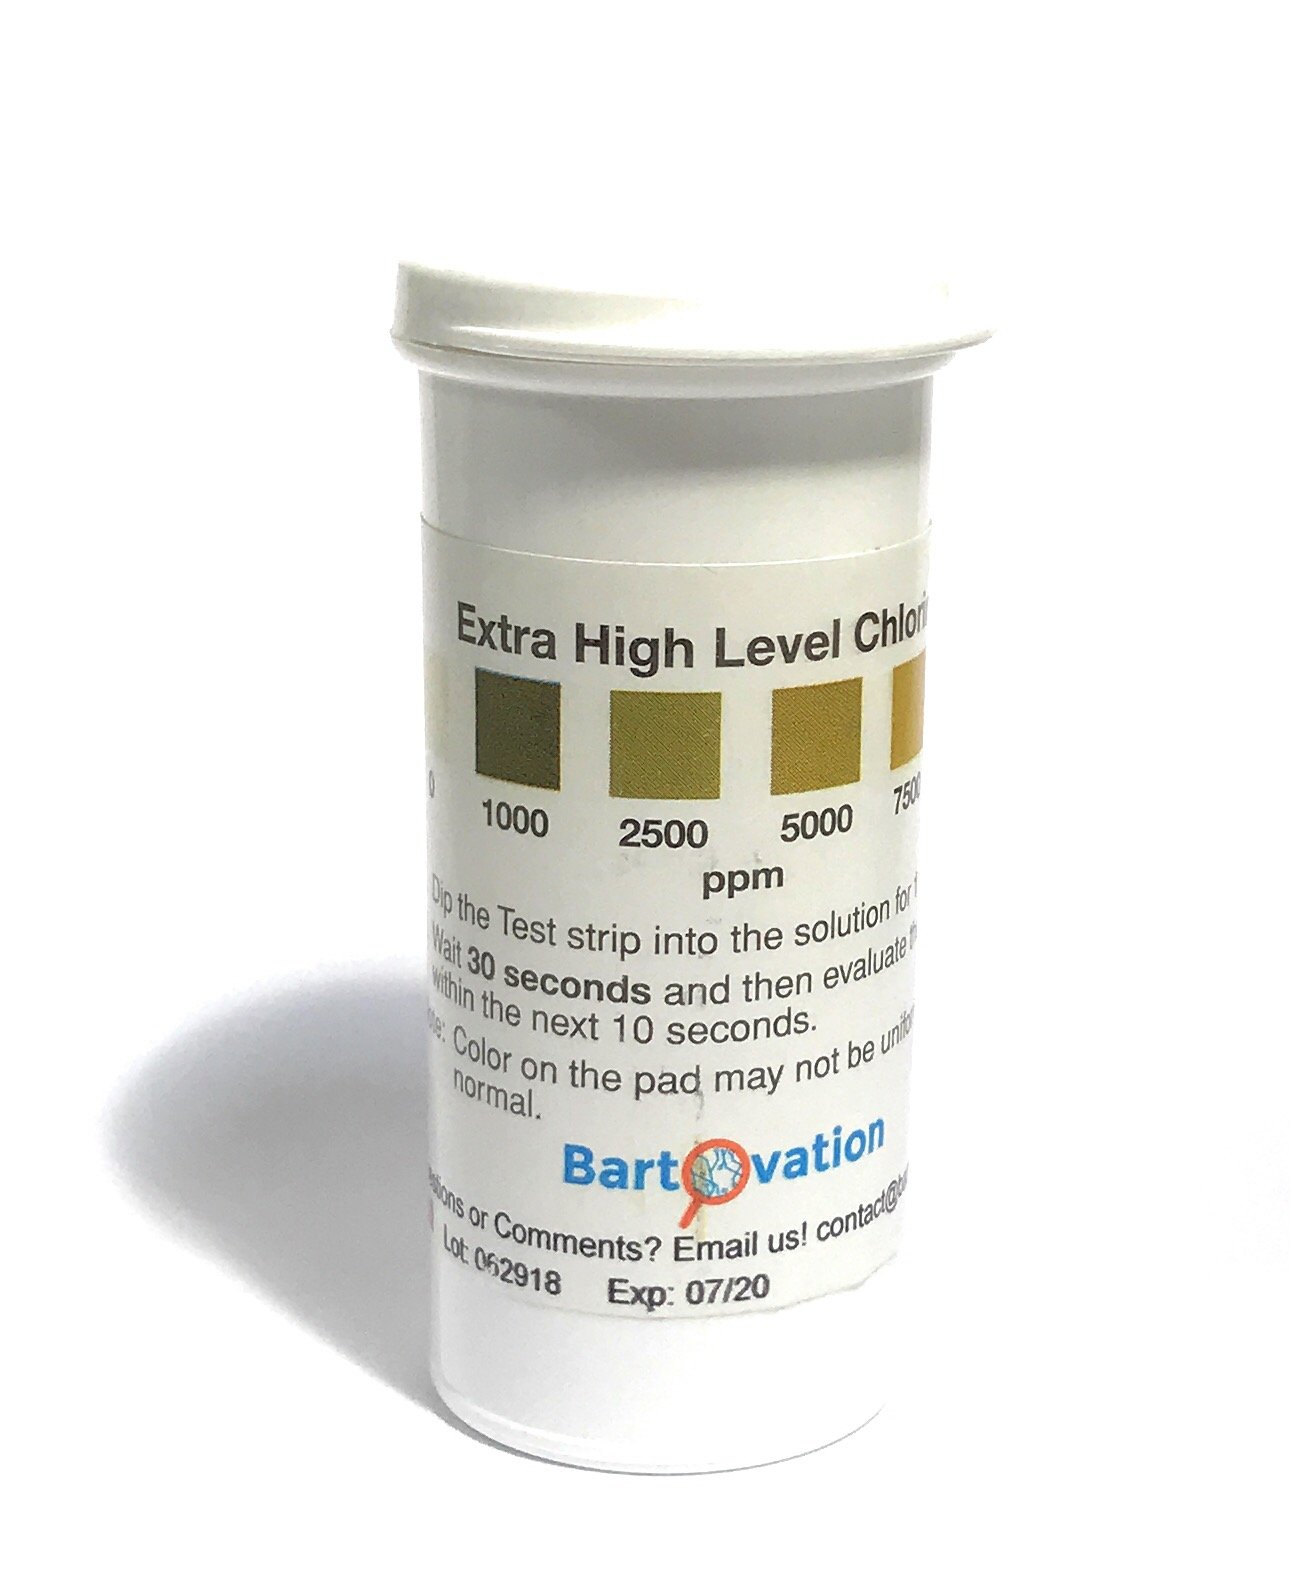 Extra High-Level Chlorine Test Strips, 0-10,000 ppm [Vial of 100 Strips] by Bartovation